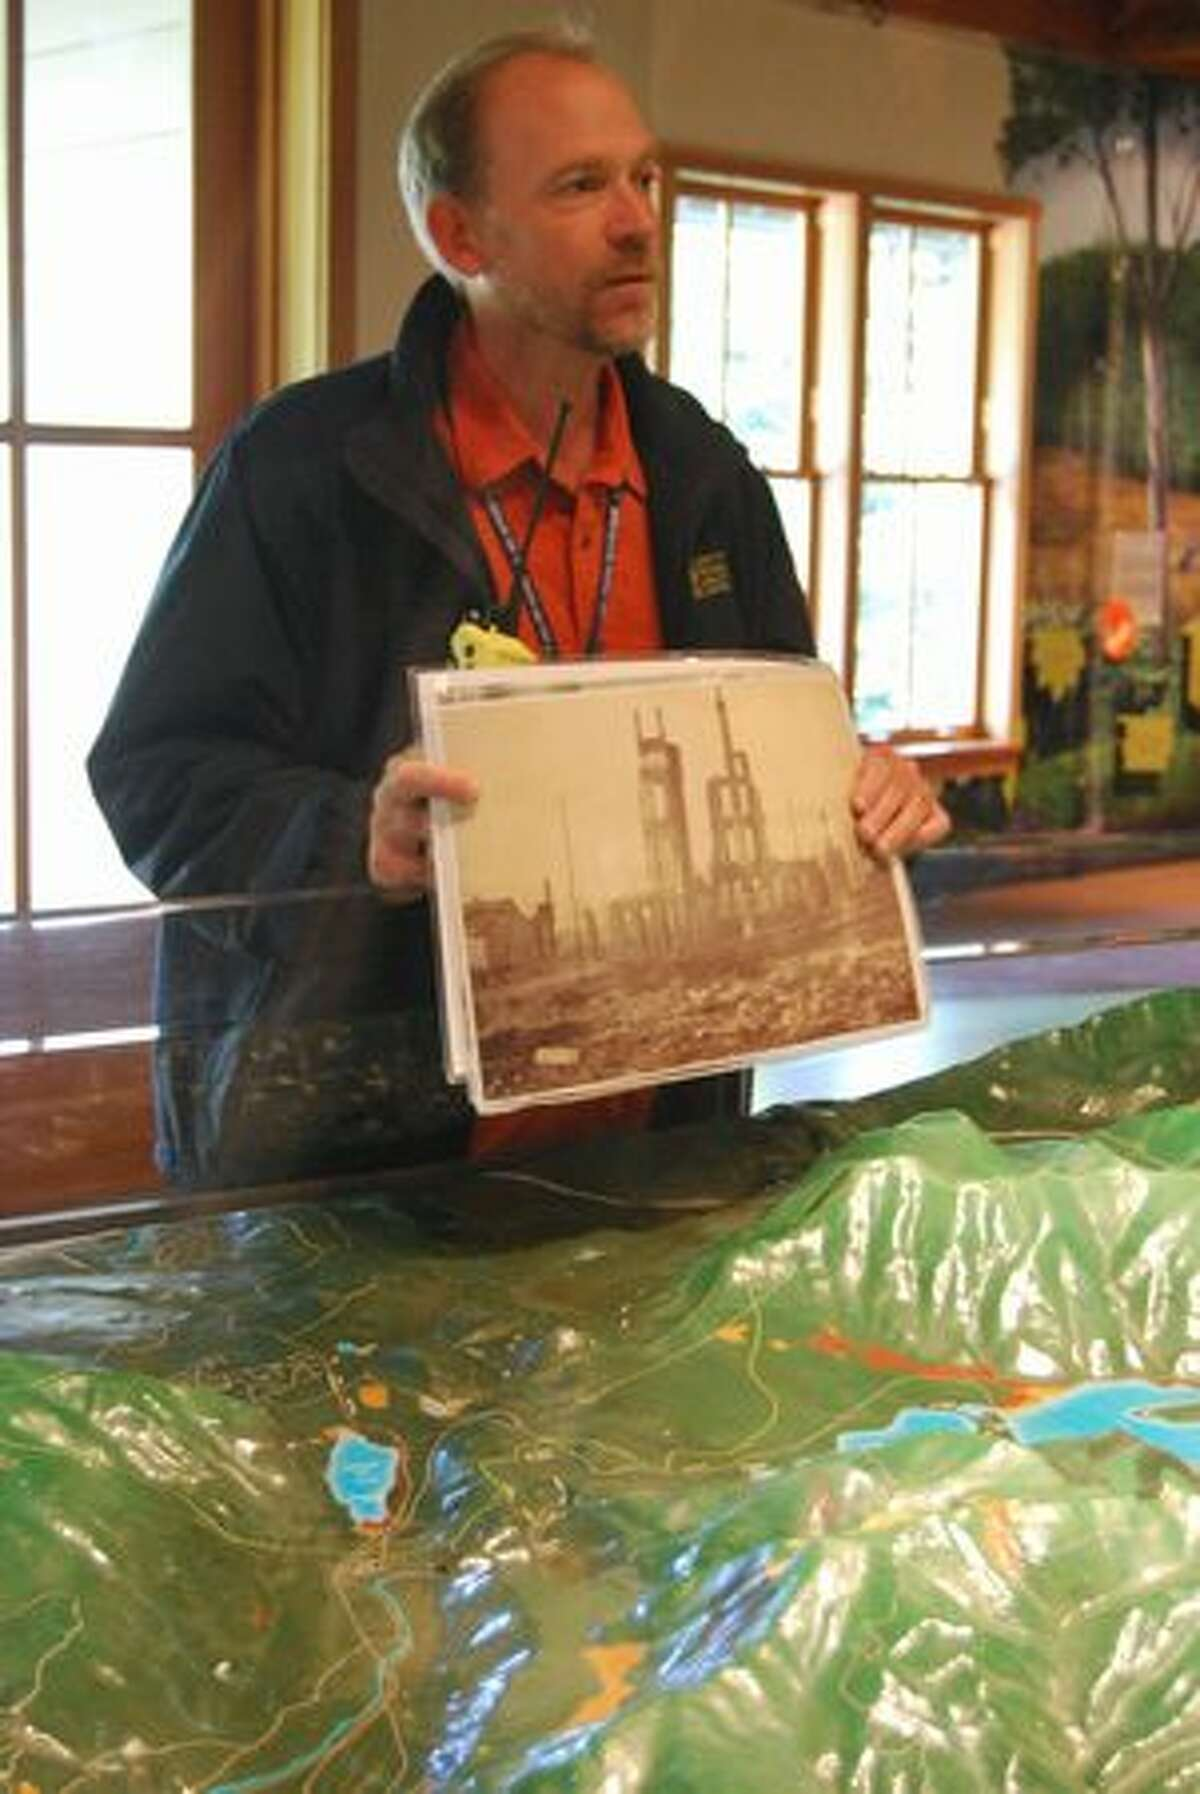 Ralph Naess, public education specialist for Seattle Public Utilities, holds up a picture of the Great Seattle Fire in front of a model of the Cedar River Watershed.